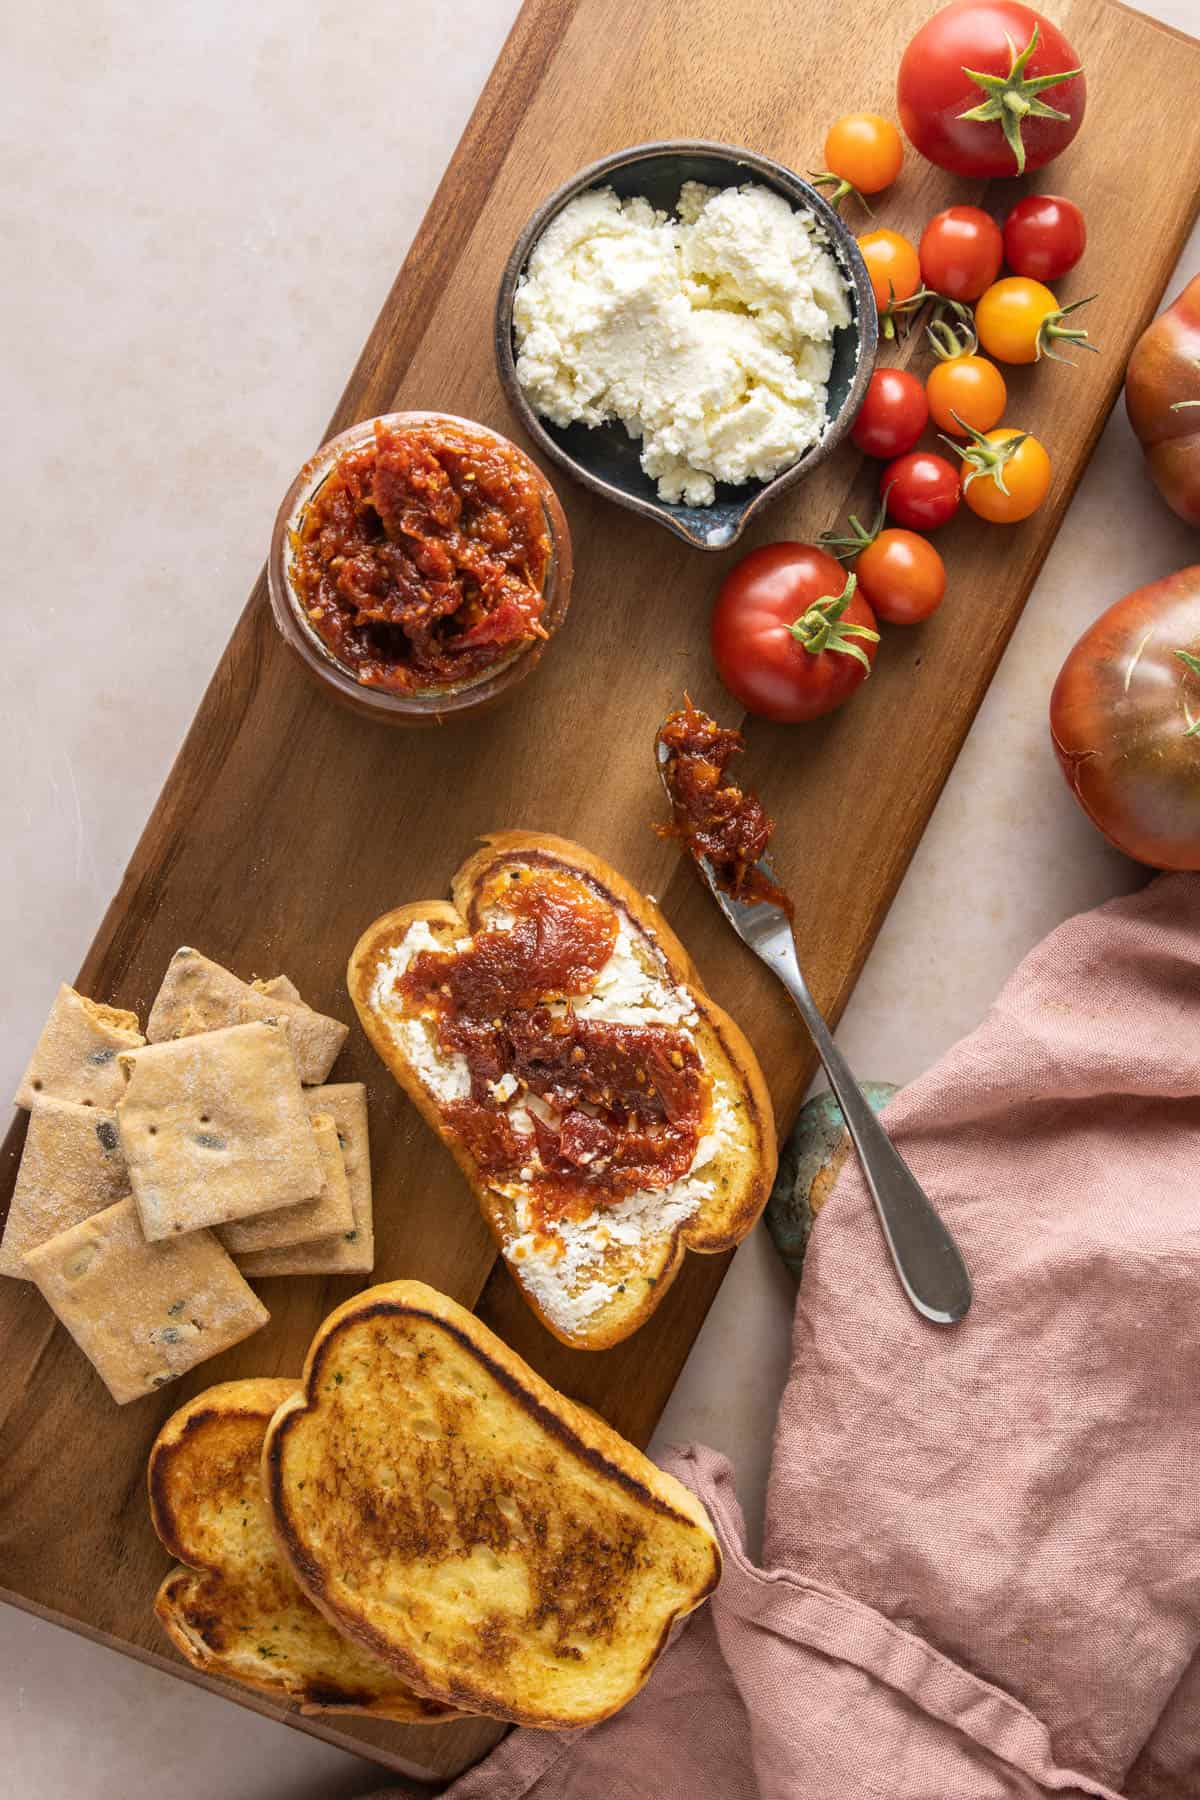 Overhead shot of a platter with bread, tomato jam, and whipped feta